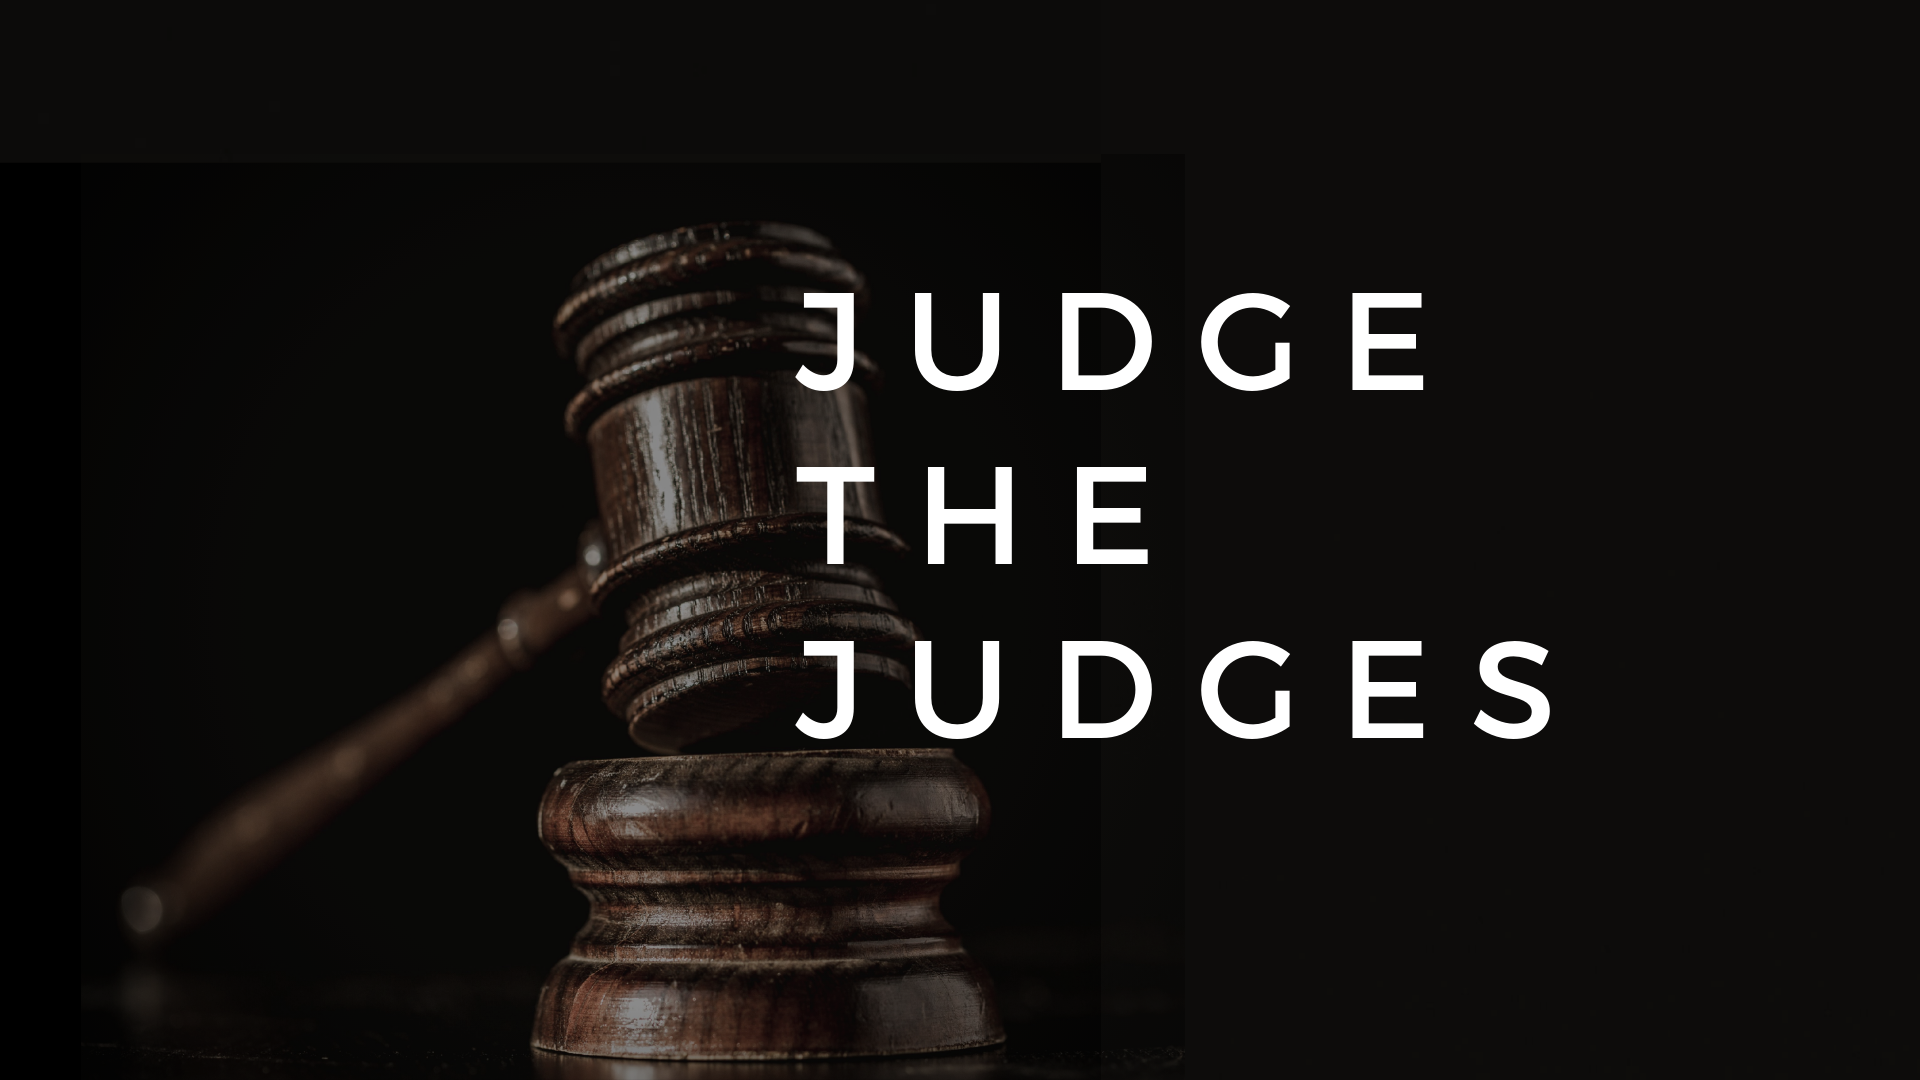 Judgethejudges